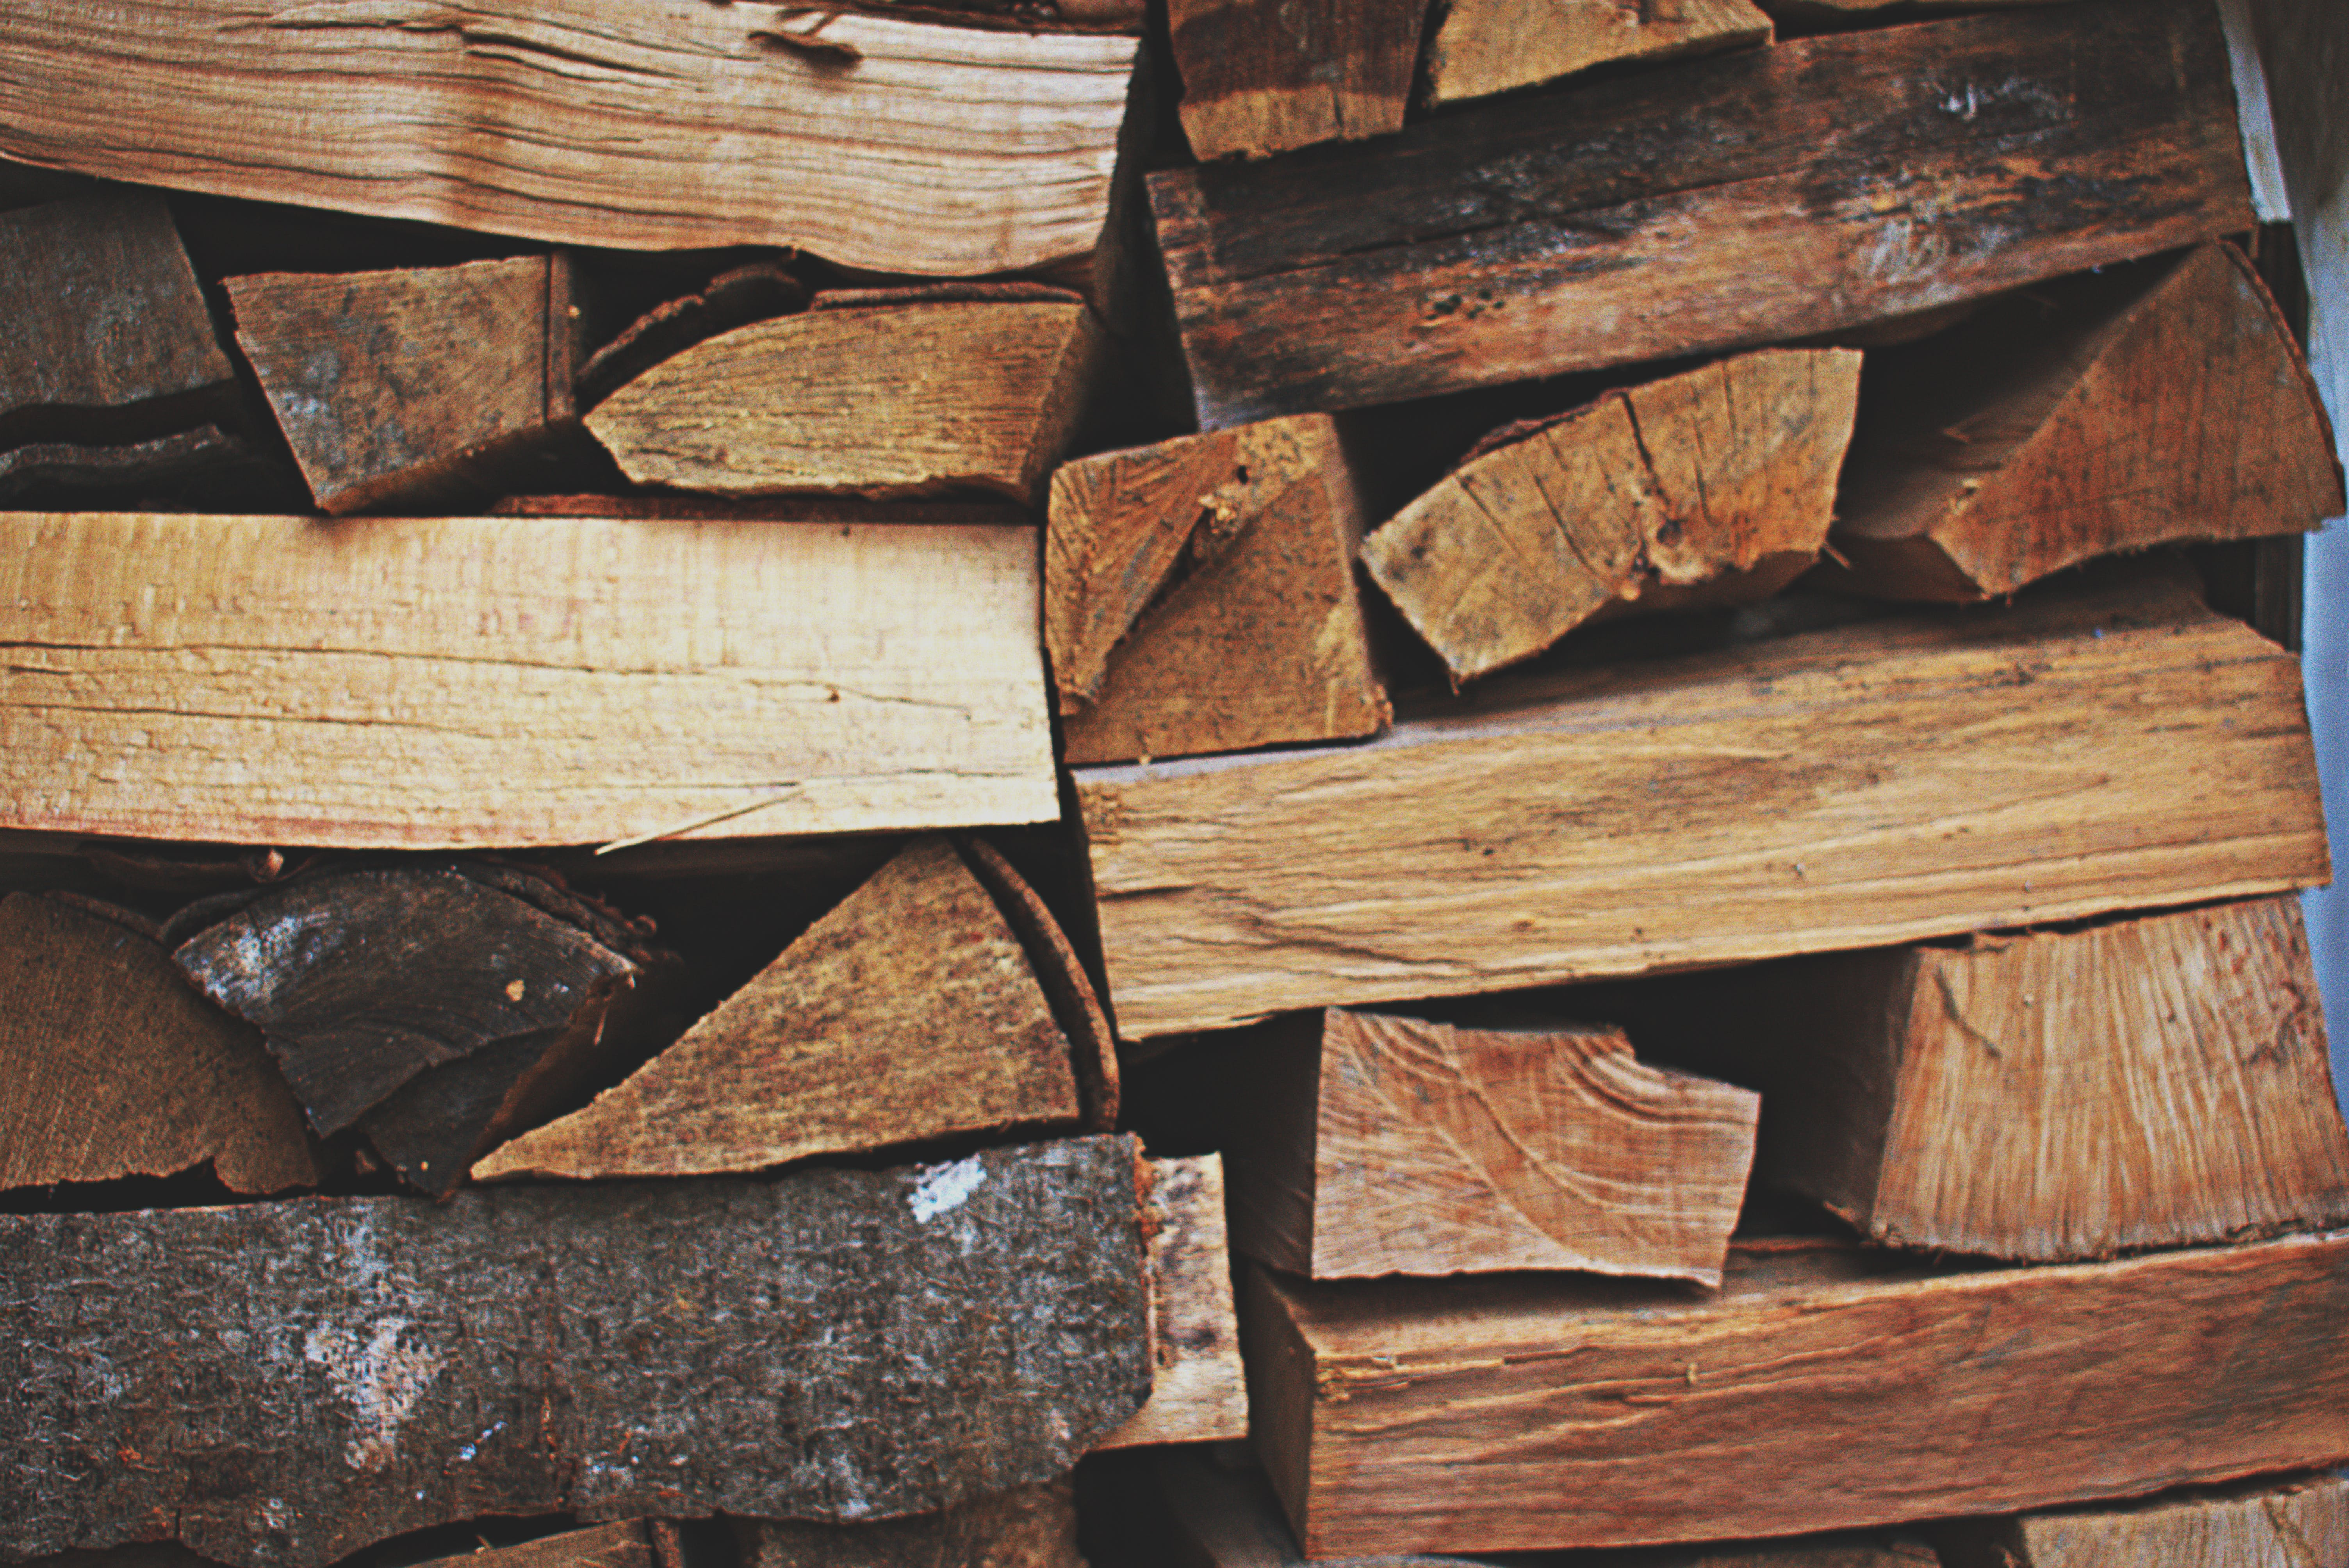 Photo of a Pile of Firewood